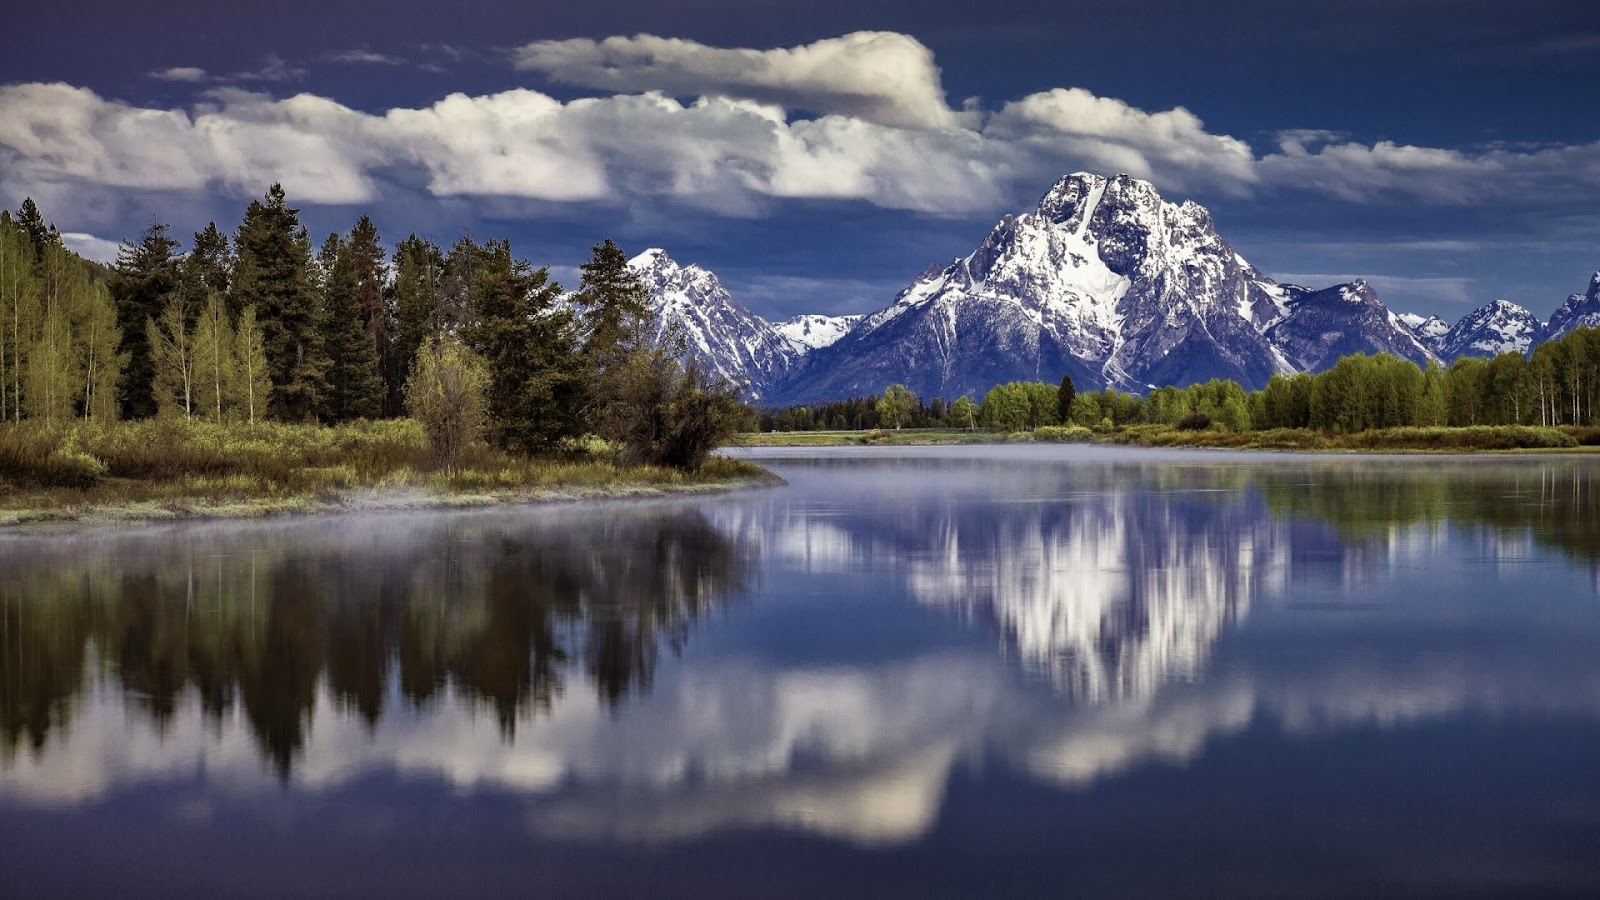 http://www.funmag.org/pictures-mag/nature/lake-wallpapers-18-photos/